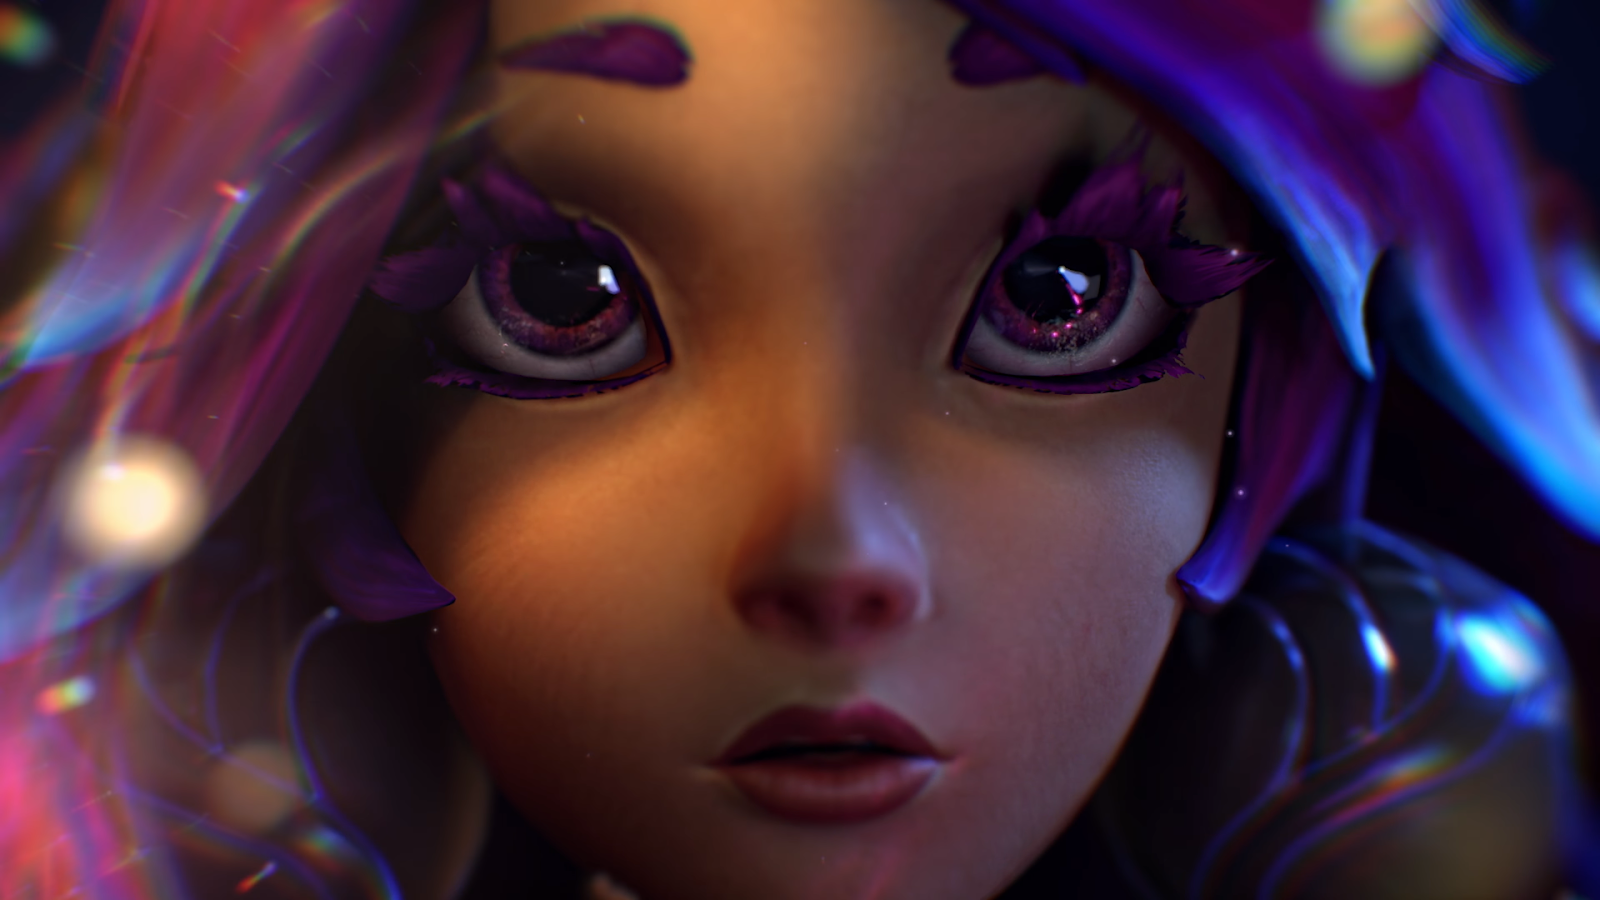 League of Legends Lillia, full abilities revealed.